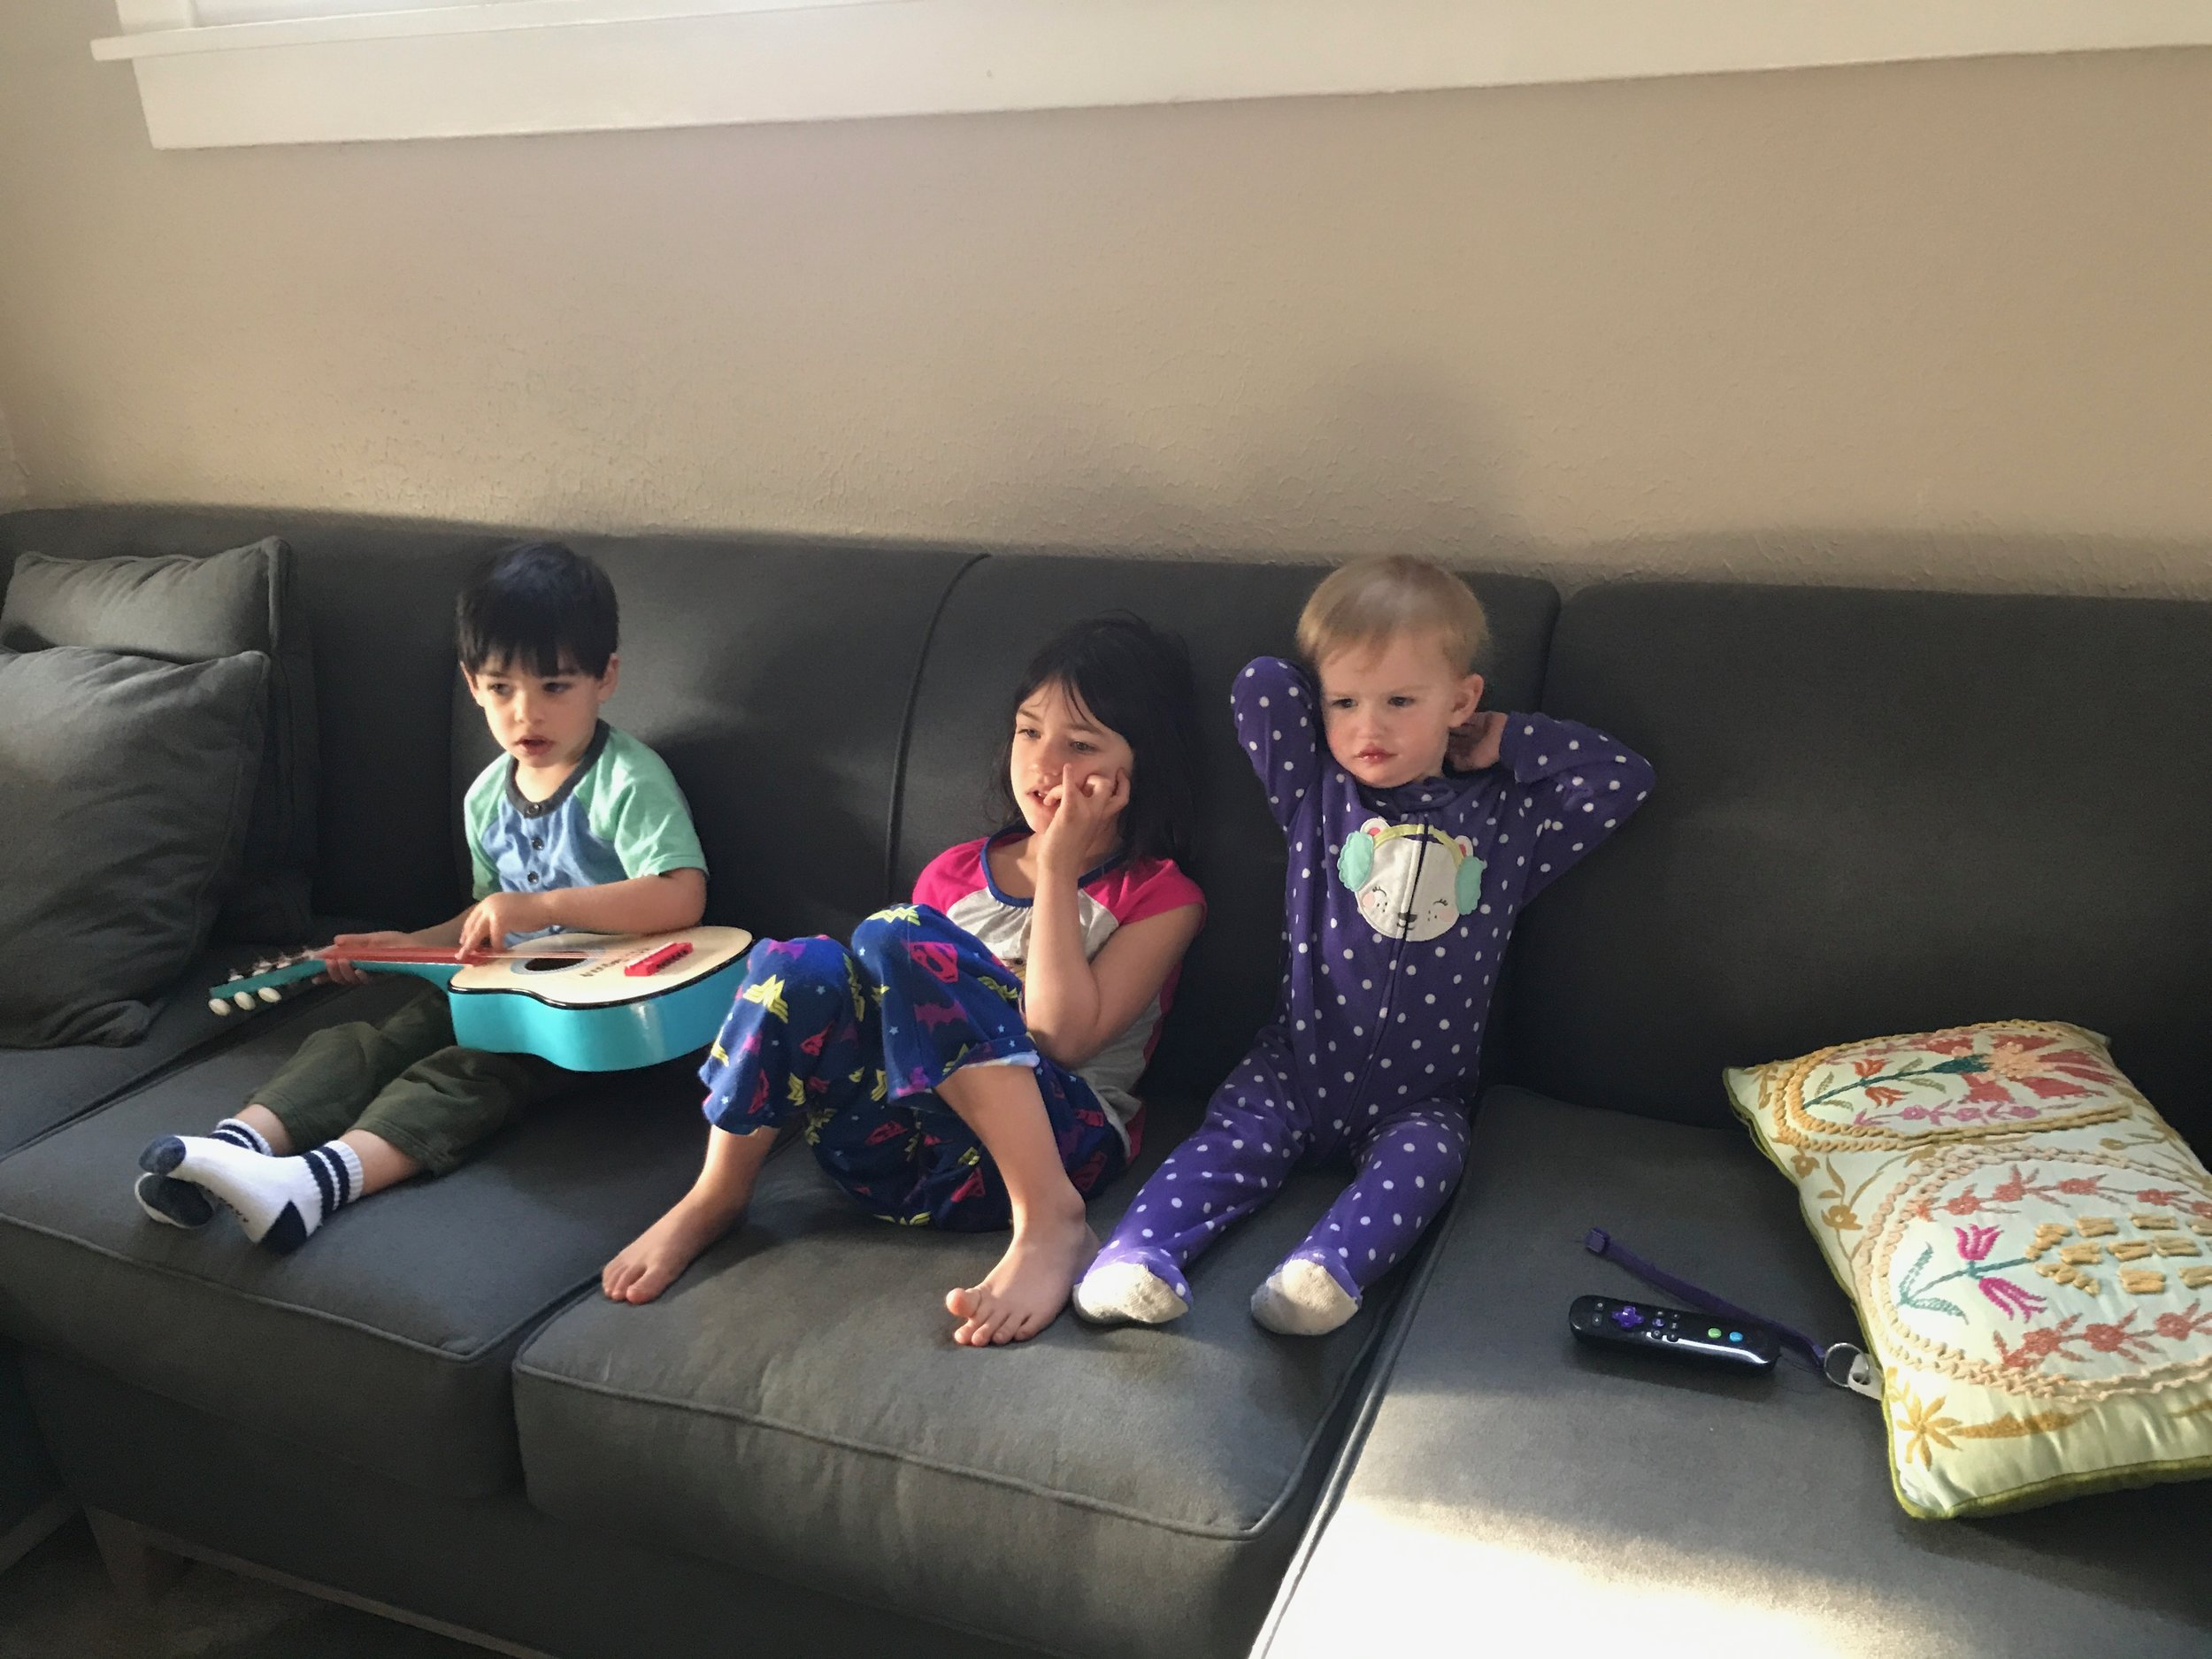 Mornings with cousins are the best. We were lucky enough to have 5 weeks of them. A huge thanks to my sister and brother in law for housing us until our stuff arrived!